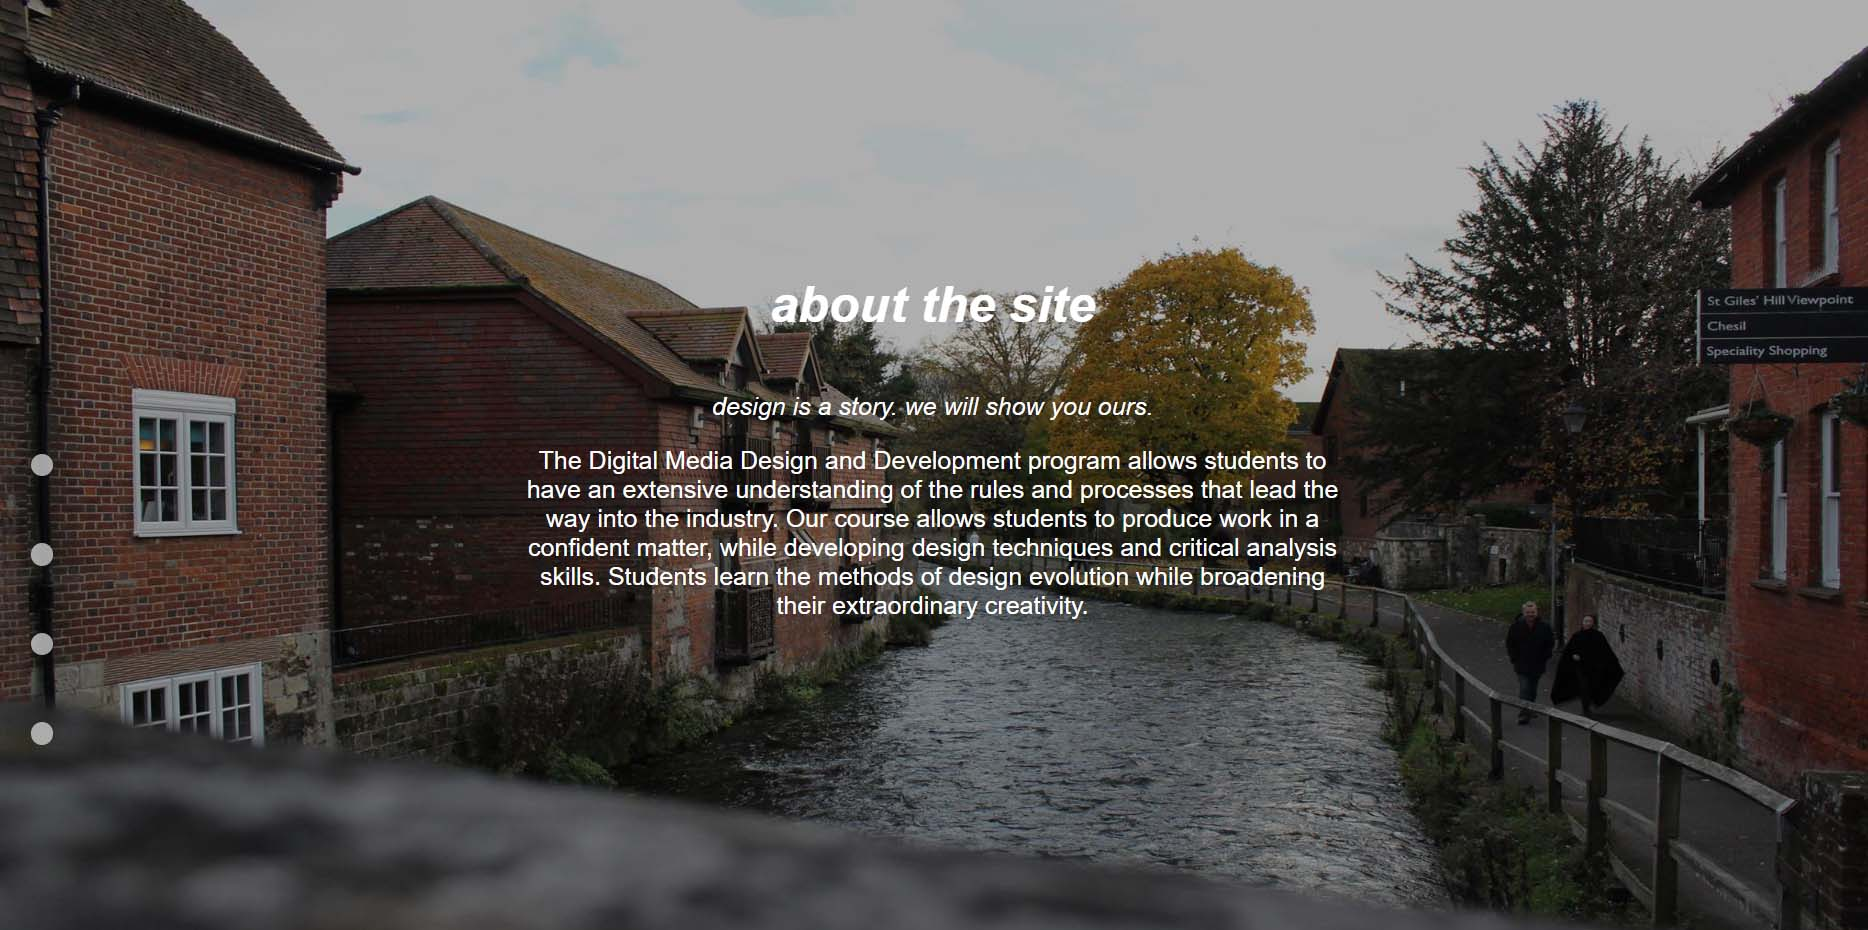 About the Website Section of the Website